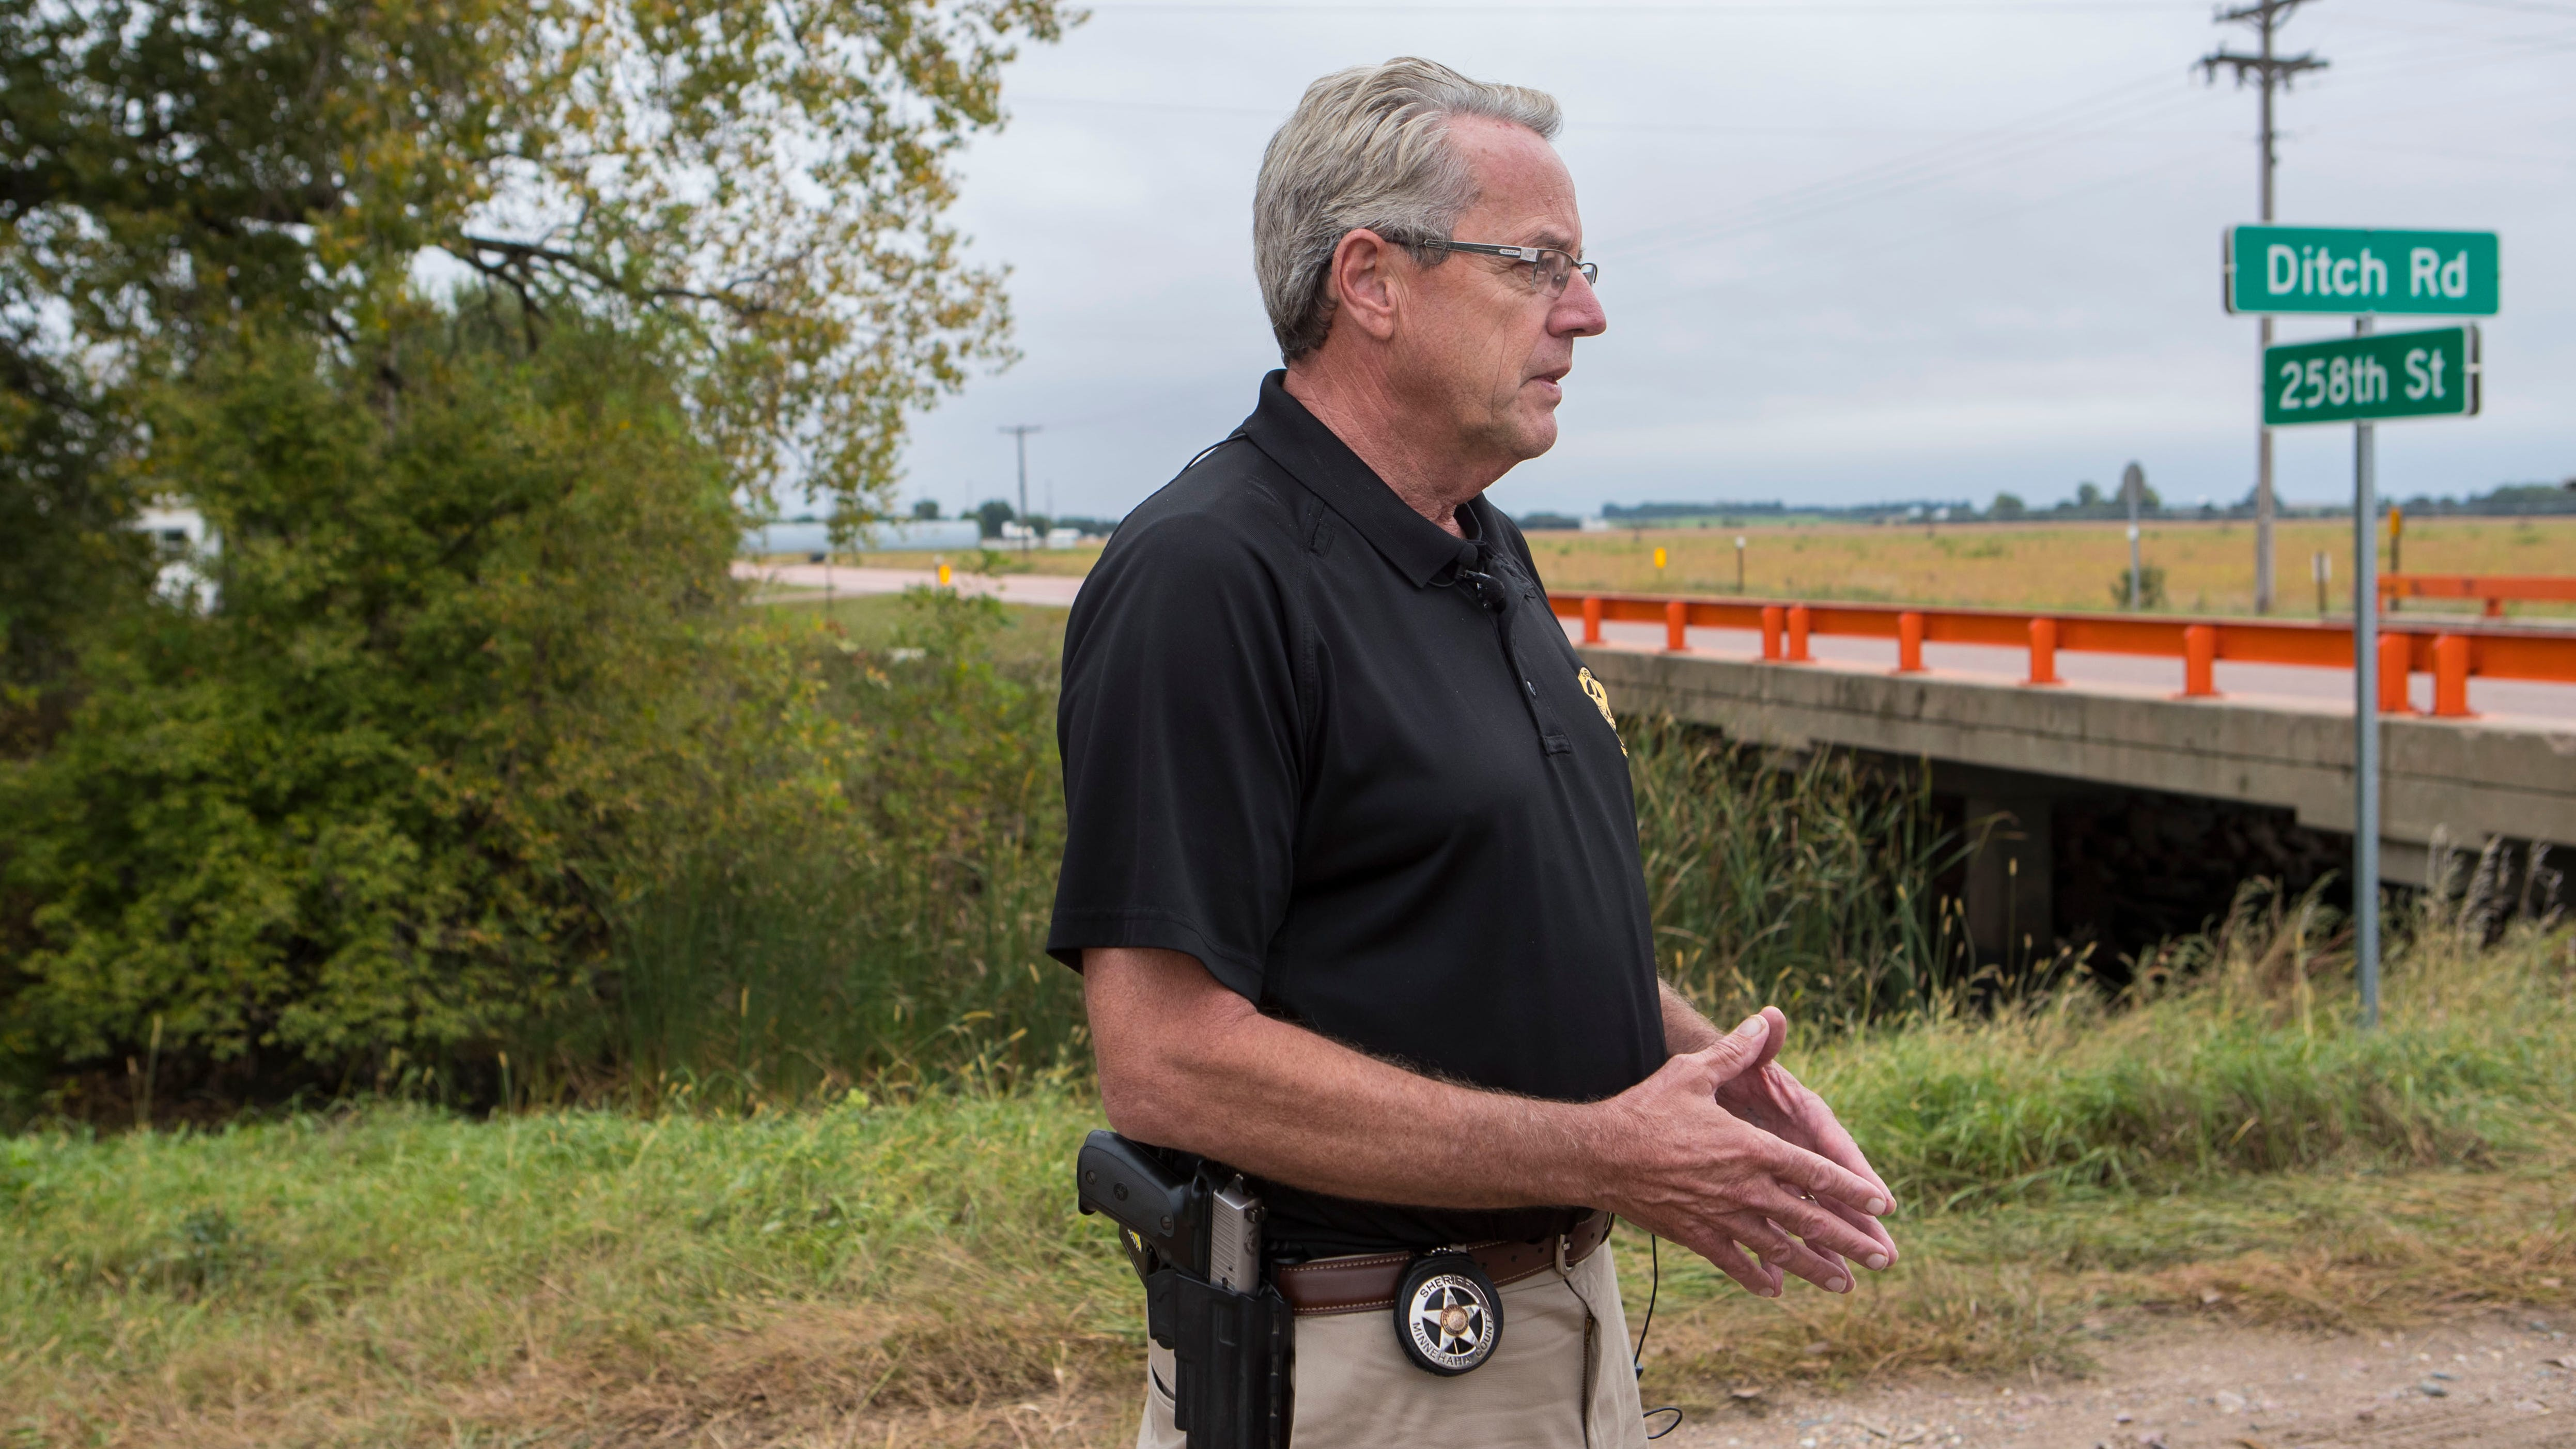 Sheriff Mike Milstead speaks about a body found on Ditch Road on Tuesday, Sept. 18, 2018 in Renner, S.D.